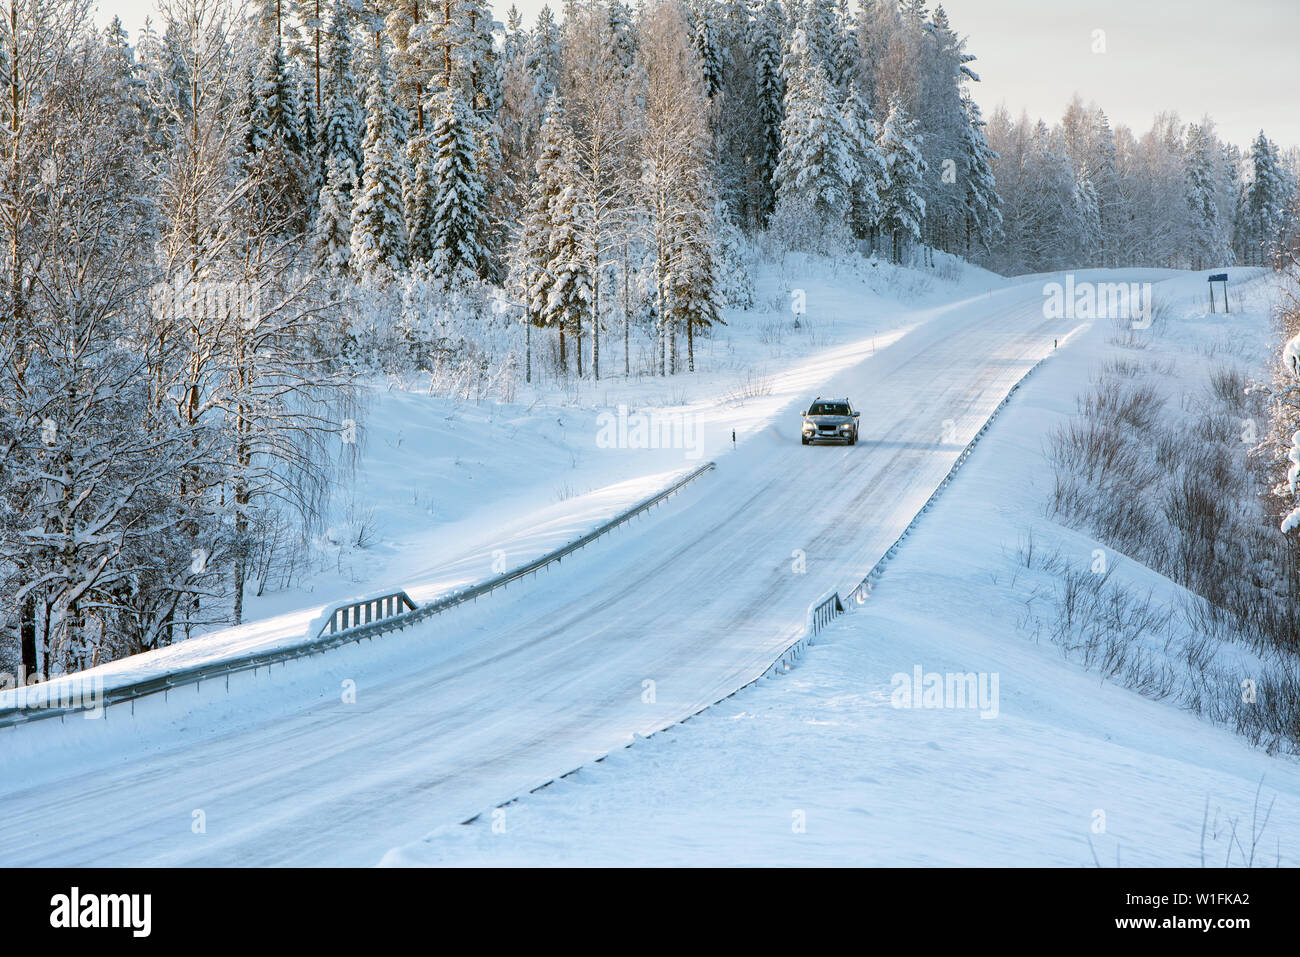 Snowy and icy road winding through winter forest landscape in Eastern Finland - Stock Image